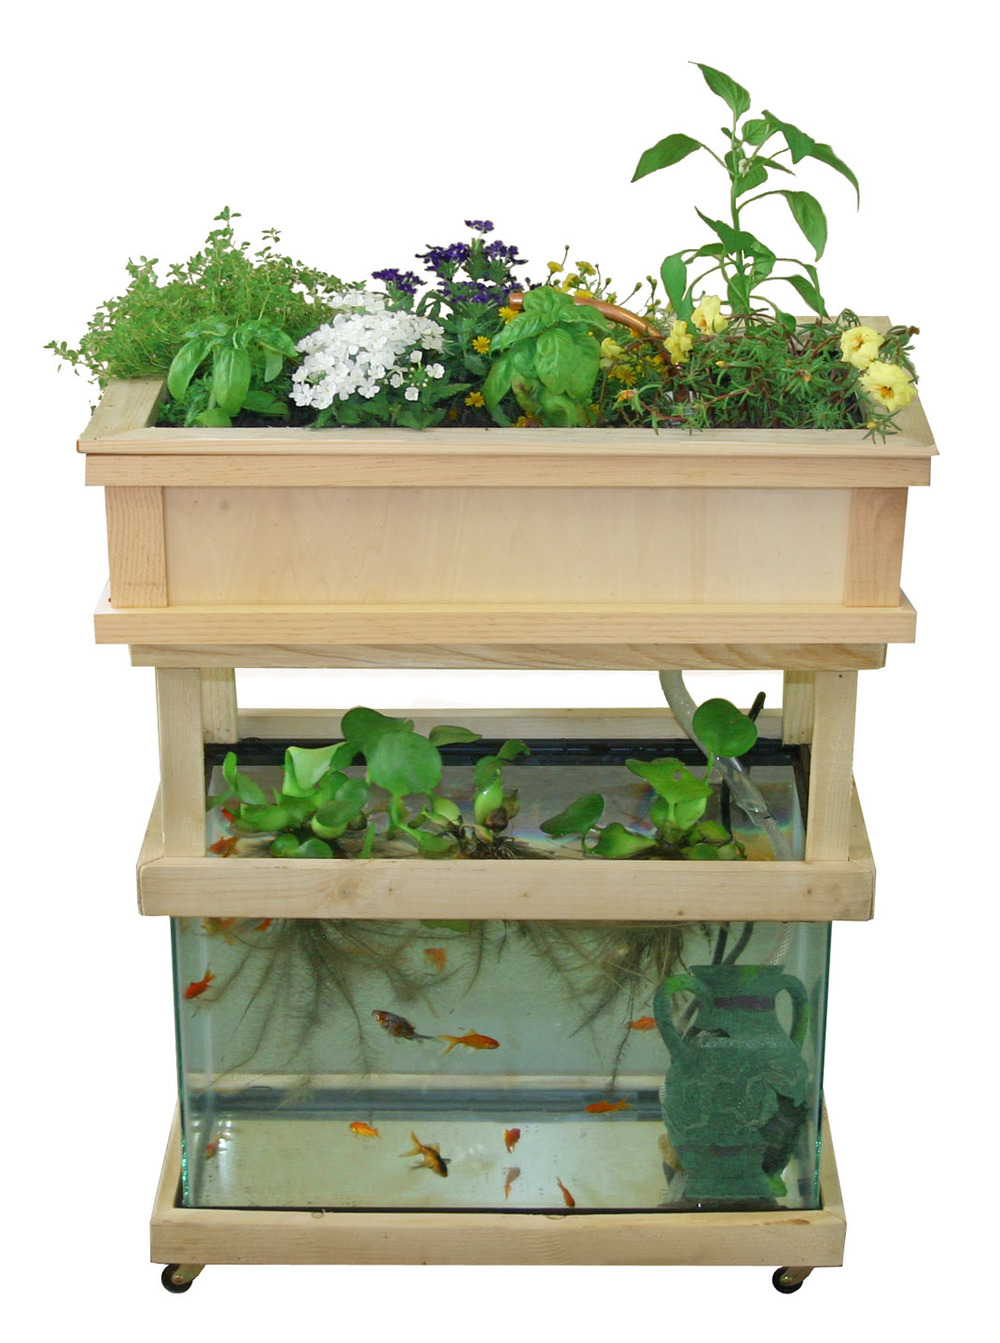 diy-aquaponics-fish-tank-5.jpg